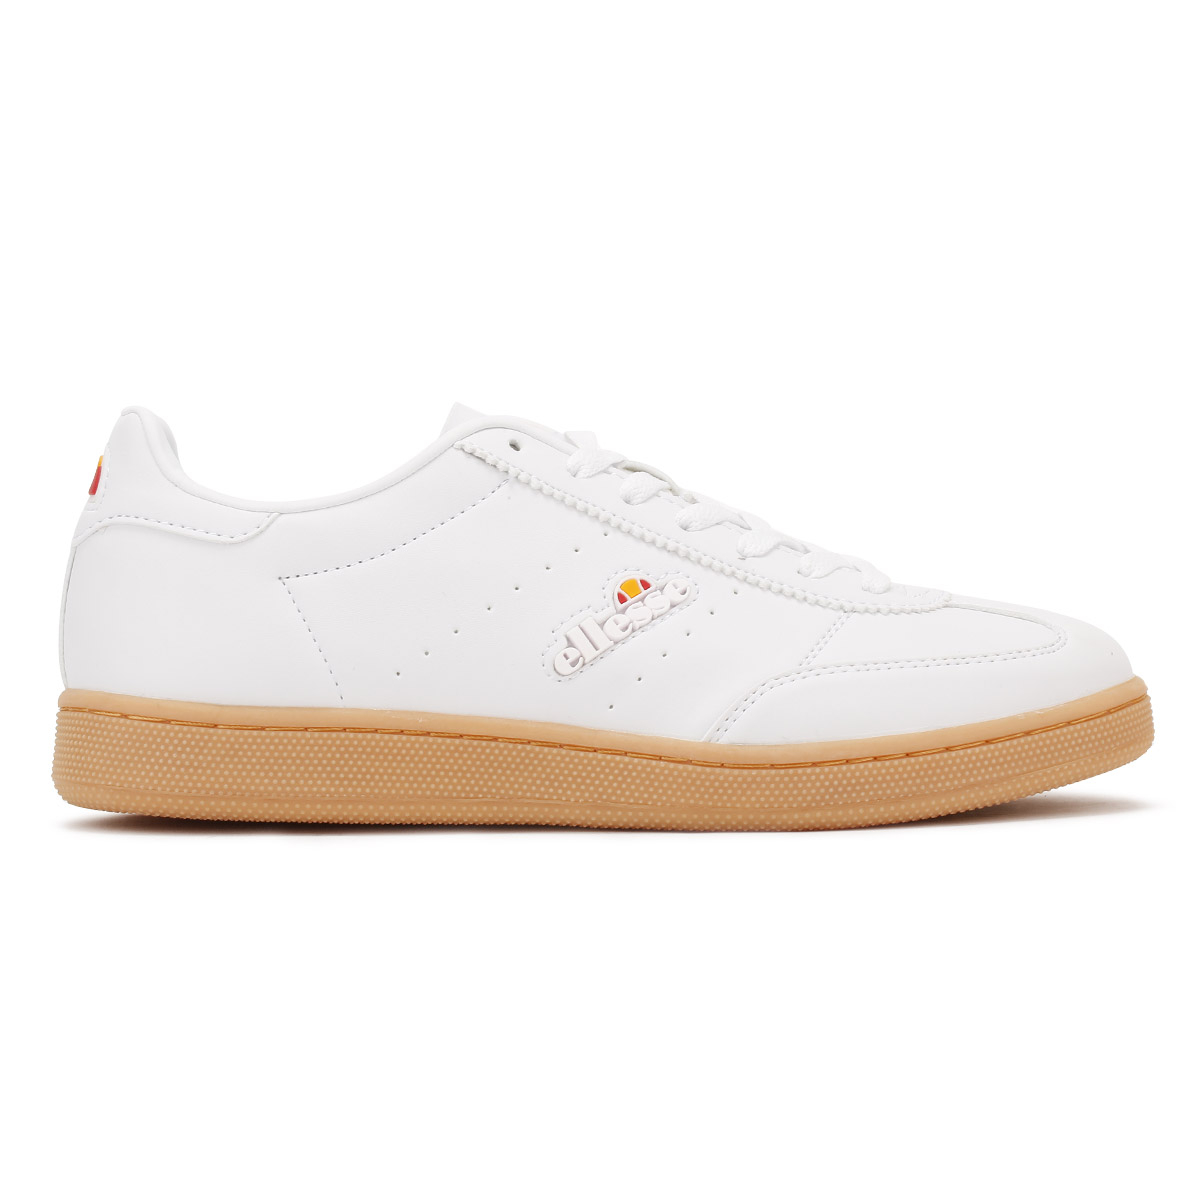 Ellesse Womens White Napoli Trainers, Leather Upper & Gum ...